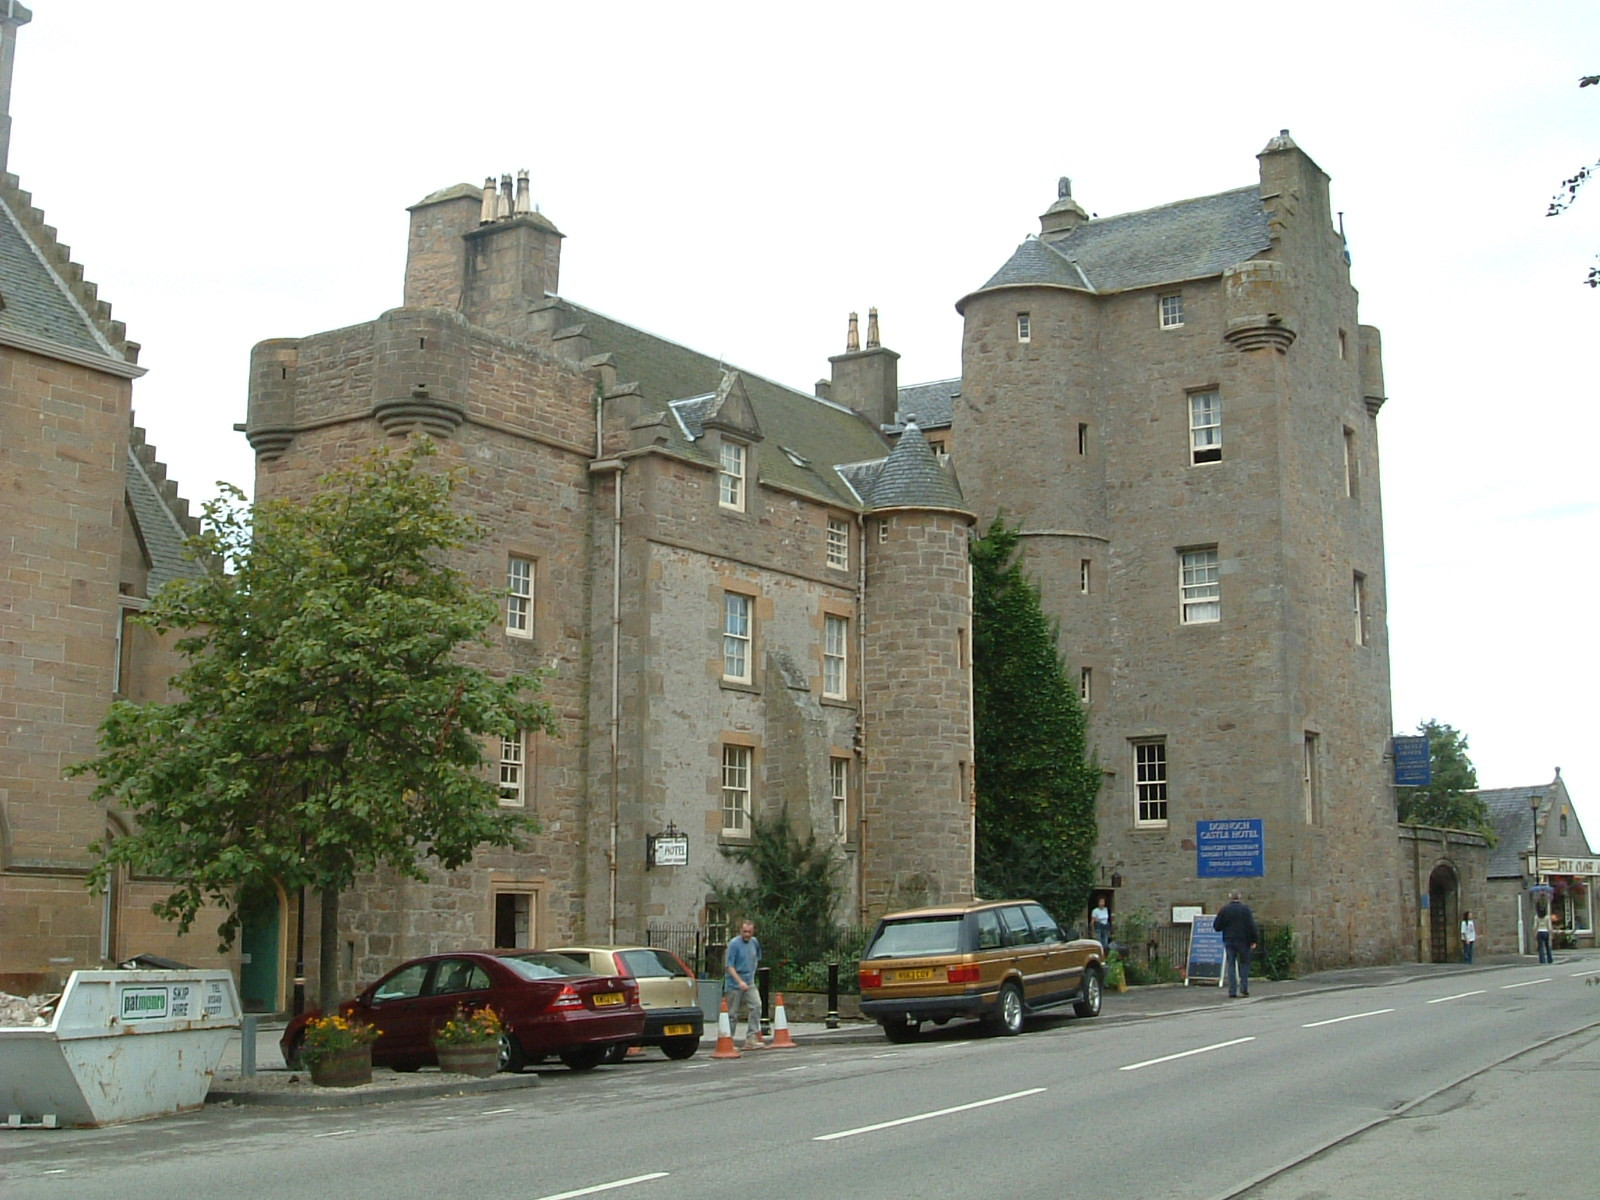 The Castle Hotel in Dornoch